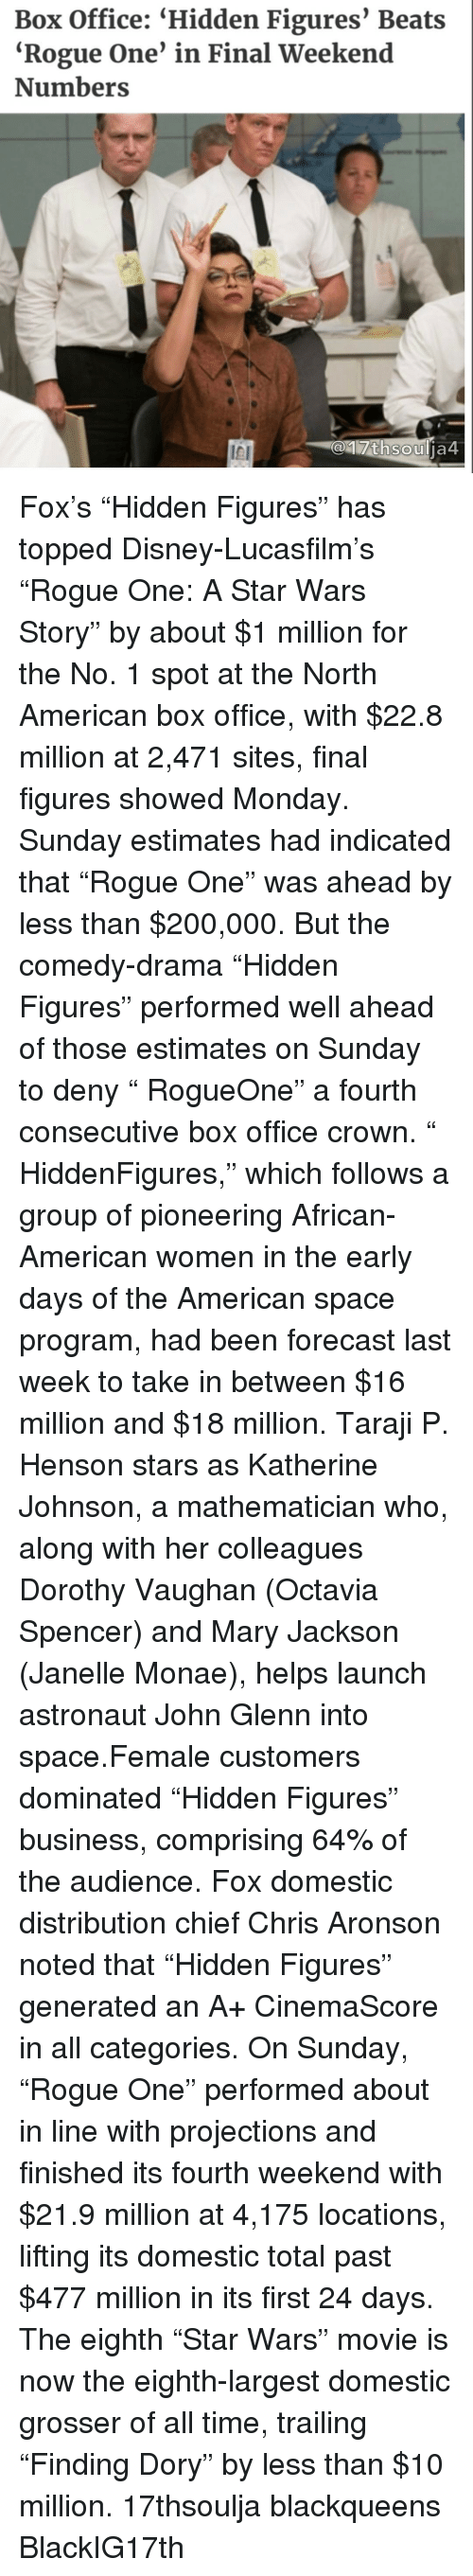 """Janelle Monae: Box Office: """"Hidden Figures' Beats  """"Rogue One' in Final Weekend  Numbers  thsou  ja4 Fox's """"Hidden Figures"""" has topped Disney-Lucasfilm's """"Rogue One: A Star Wars Story"""" by about $1 million for the No. 1 spot at the North American box office, with $22.8 million at 2,471 sites, final figures showed Monday. Sunday estimates had indicated that """"Rogue One"""" was ahead by less than $200,000. But the comedy-drama """"Hidden Figures"""" performed well ahead of those estimates on Sunday to deny """" RogueOne"""" a fourth consecutive box office crown. """" HiddenFigures,"""" which follows a group of pioneering African-American women in the early days of the American space program, had been forecast last week to take in between $16 million and $18 million. Taraji P. Henson stars as Katherine Johnson, a mathematician who, along with her colleagues Dorothy Vaughan (Octavia Spencer) and Mary Jackson (Janelle Monae), helps launch astronaut John Glenn into space.Female customers dominated """"Hidden Figures"""" business, comprising 64% of the audience. Fox domestic distribution chief Chris Aronson noted that """"Hidden Figures"""" generated an A+ CinemaScore in all categories. On Sunday, """"Rogue One"""" performed about in line with projections and finished its fourth weekend with $21.9 million at 4,175 locations, lifting its domestic total past $477 million in its first 24 days. The eighth """"Star Wars"""" movie is now the eighth-largest domestic grosser of all time, trailing """"Finding Dory"""" by less than $10 million. 17thsoulja blackqueens BlackIG17th"""